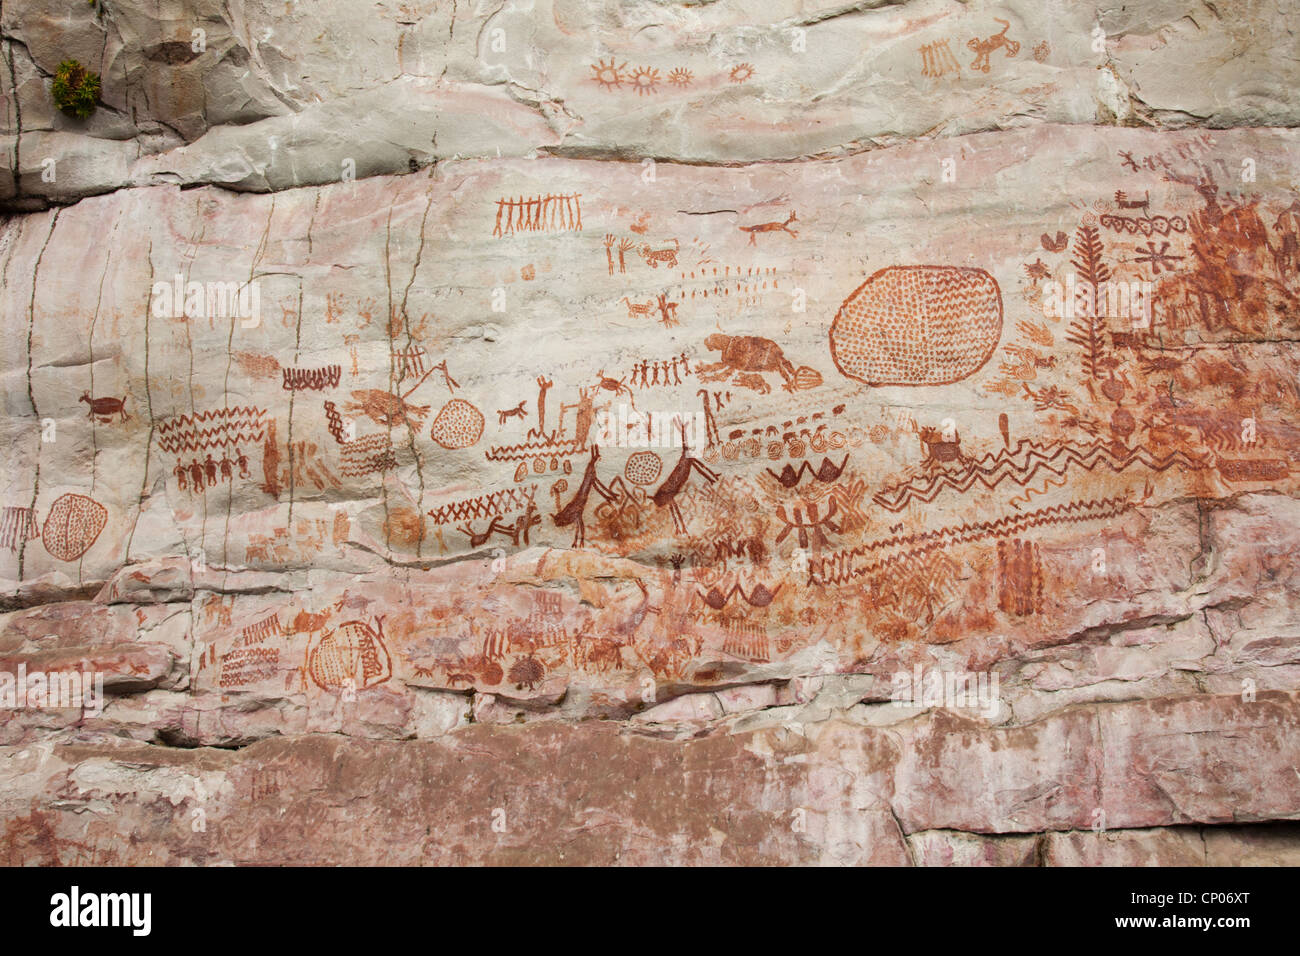 Pinturas Rupestres (rock paintings) in Cerro Azul, Guaviare, Colombia, top of the Chiribiquete range - Stock Image